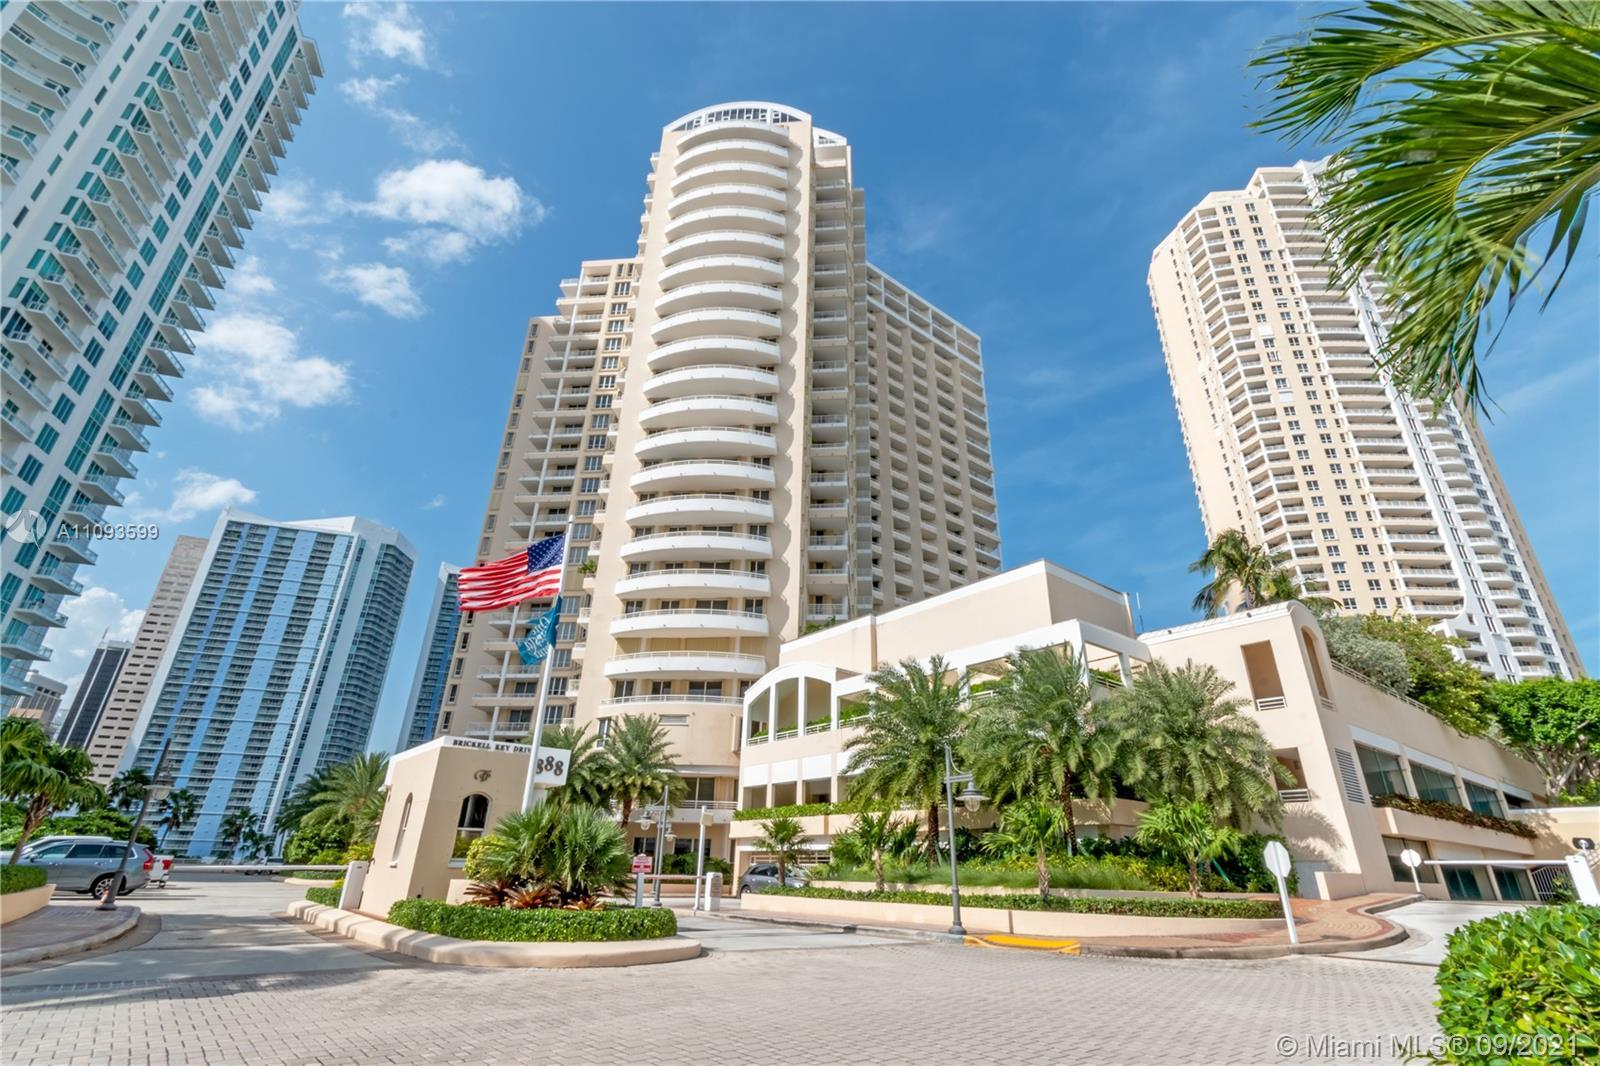 Live on the Exclusive Private Island of Brickell Key. This UNIT has been REMODELED w/OPEN FLOOR PLAN